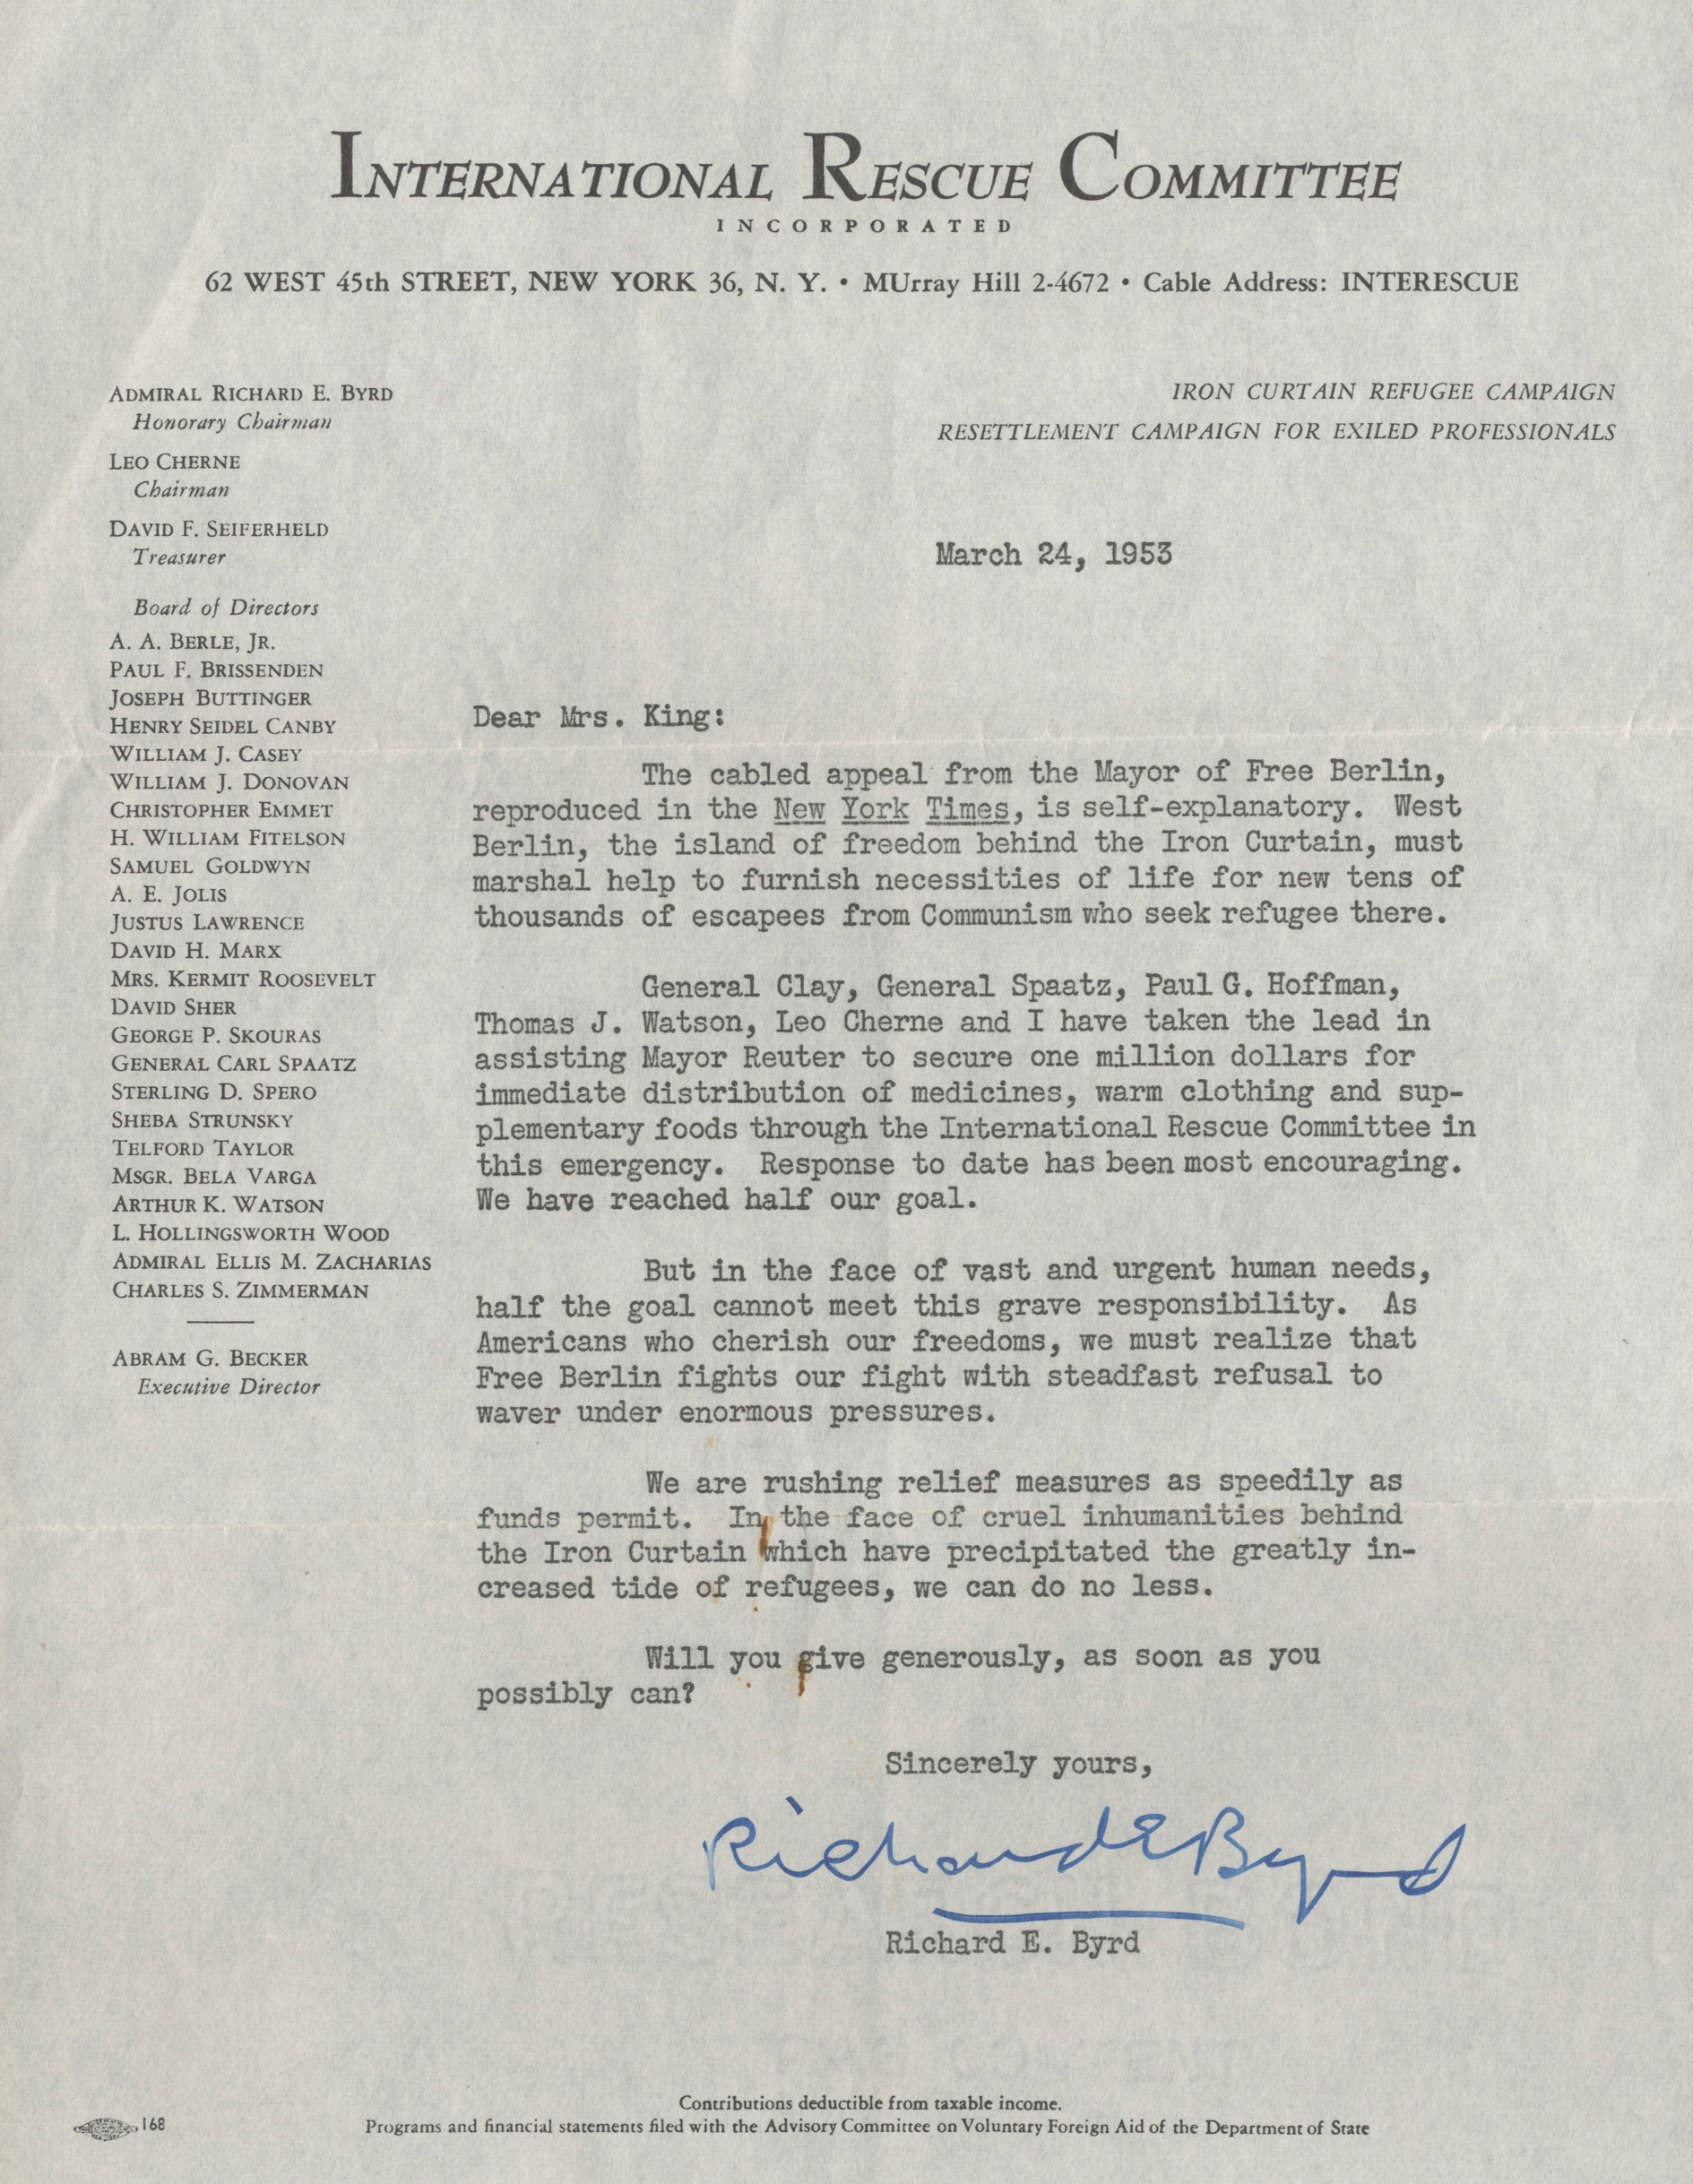 Admiral Richard E Byrd Letter Signed International Rescue Committee